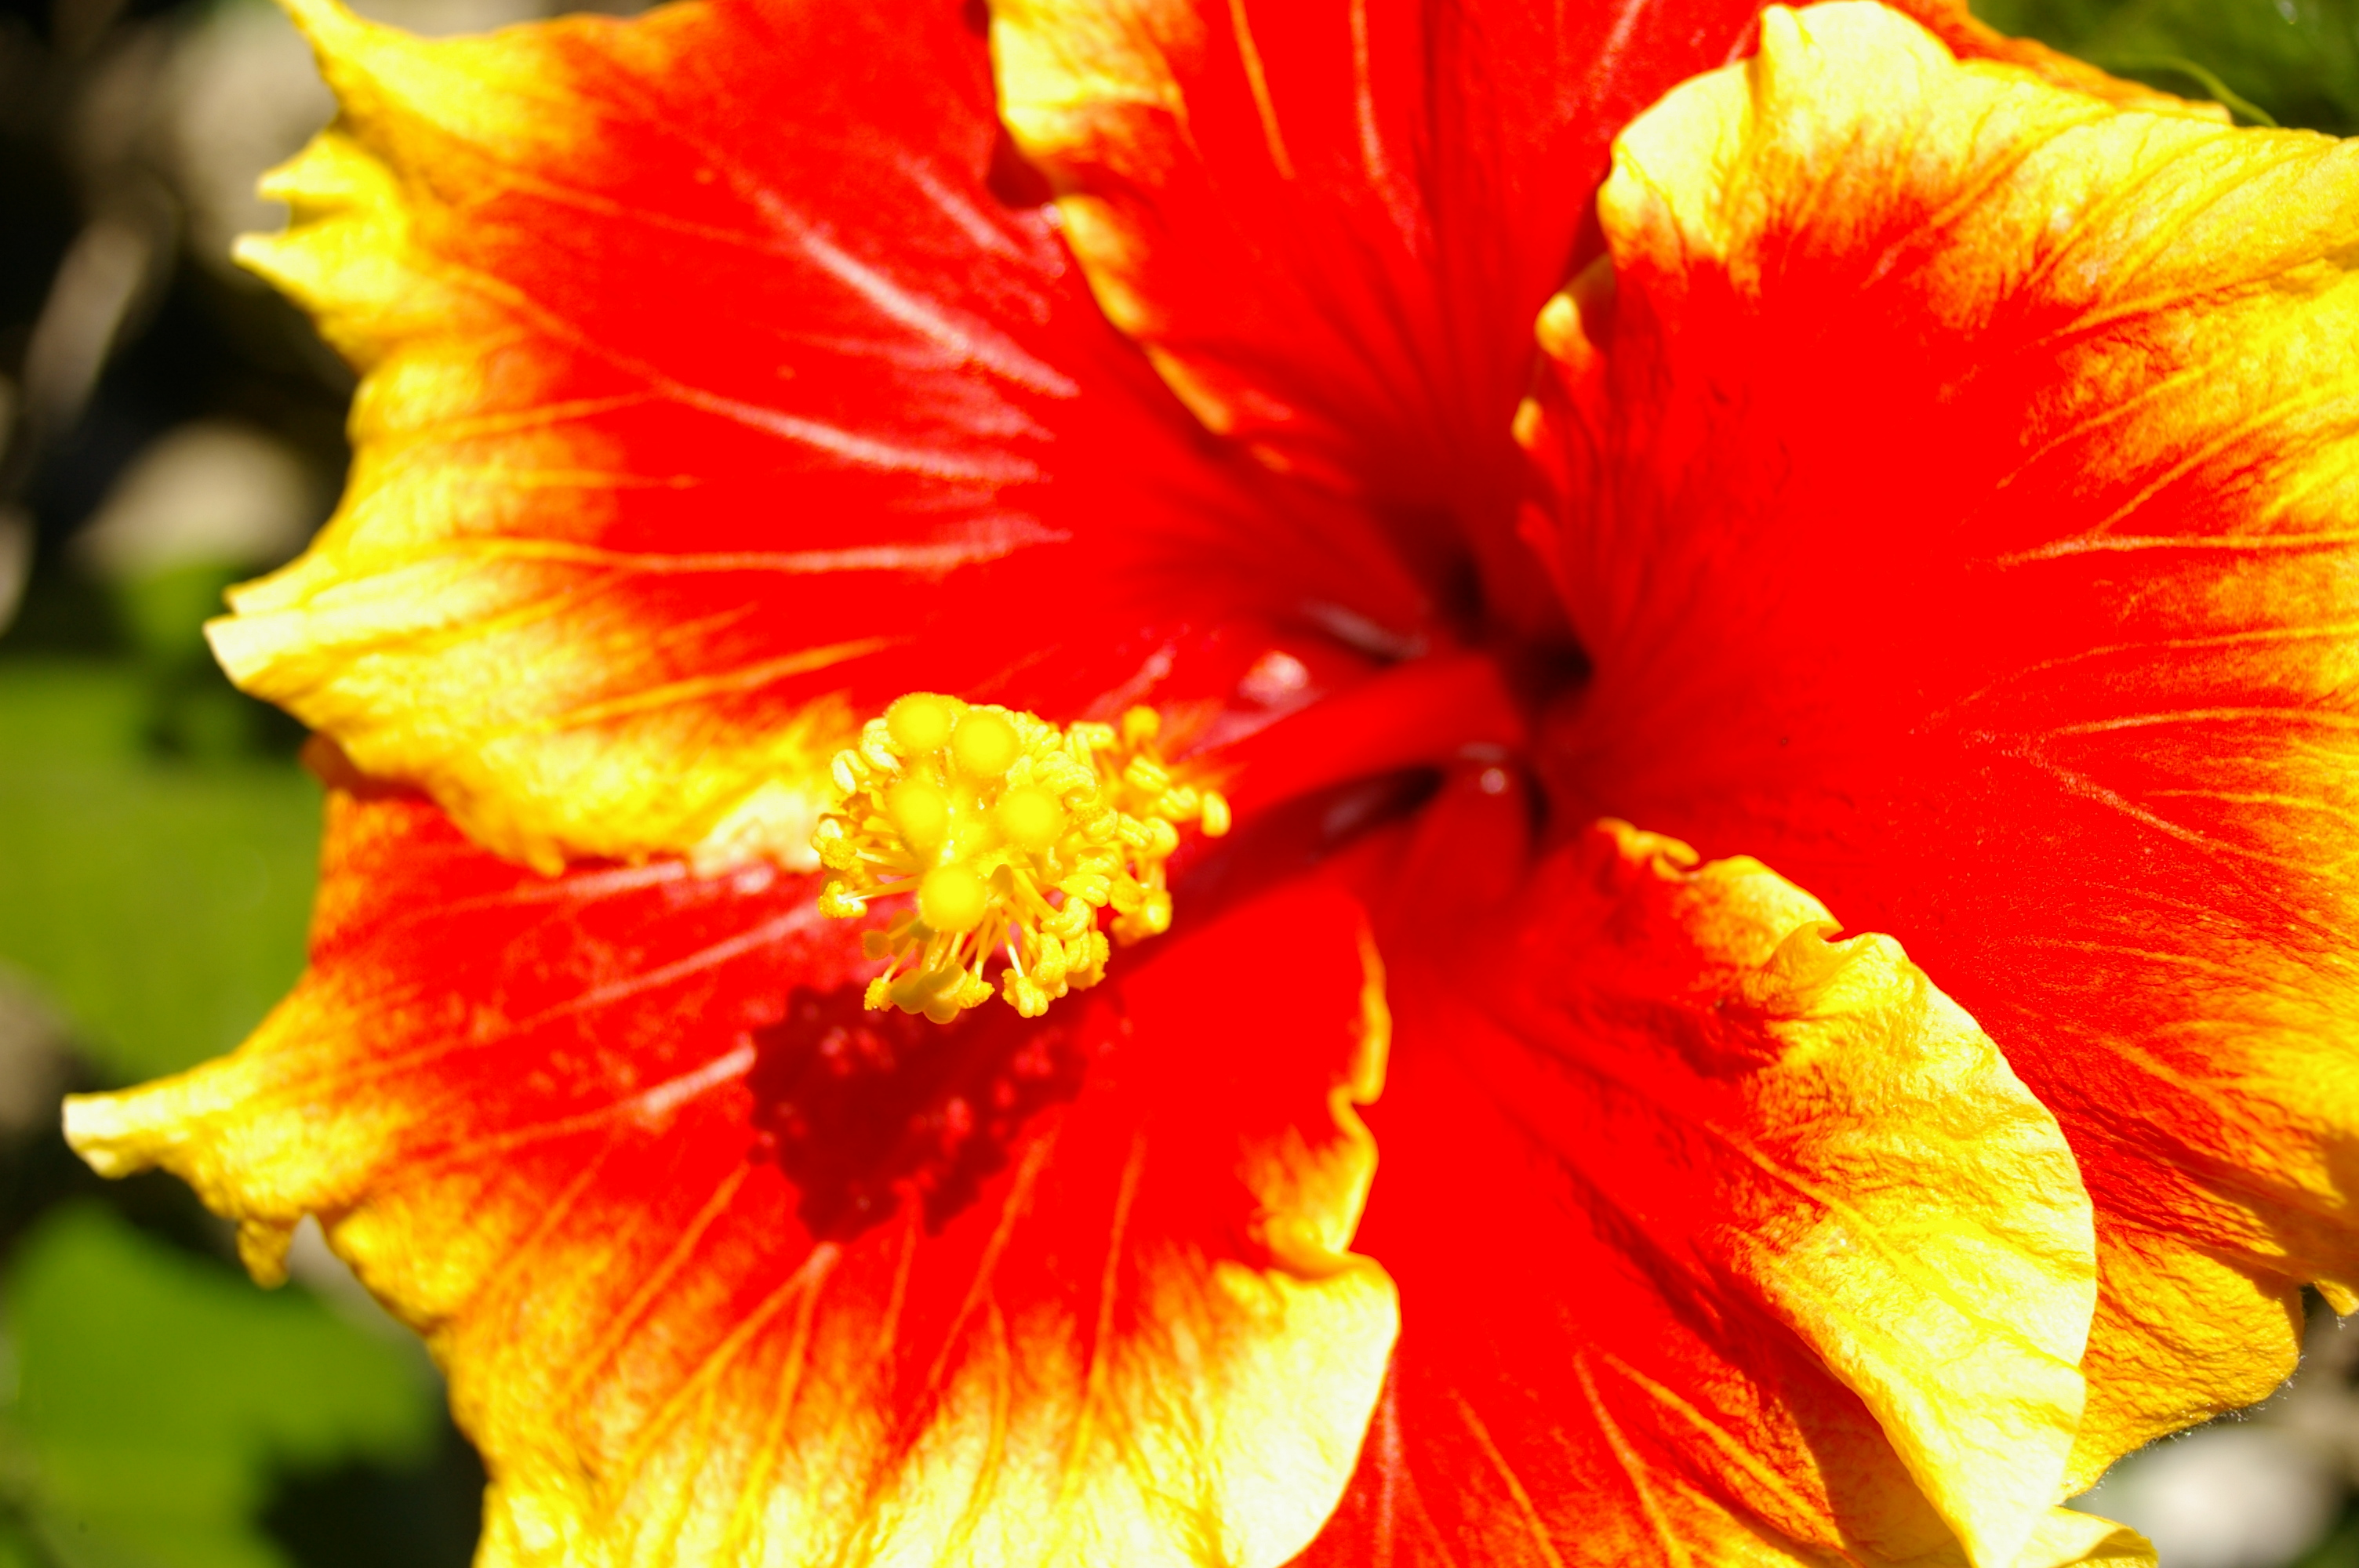 Download Hibiscus 12766 3008x2000 px High Definition Wallpaper